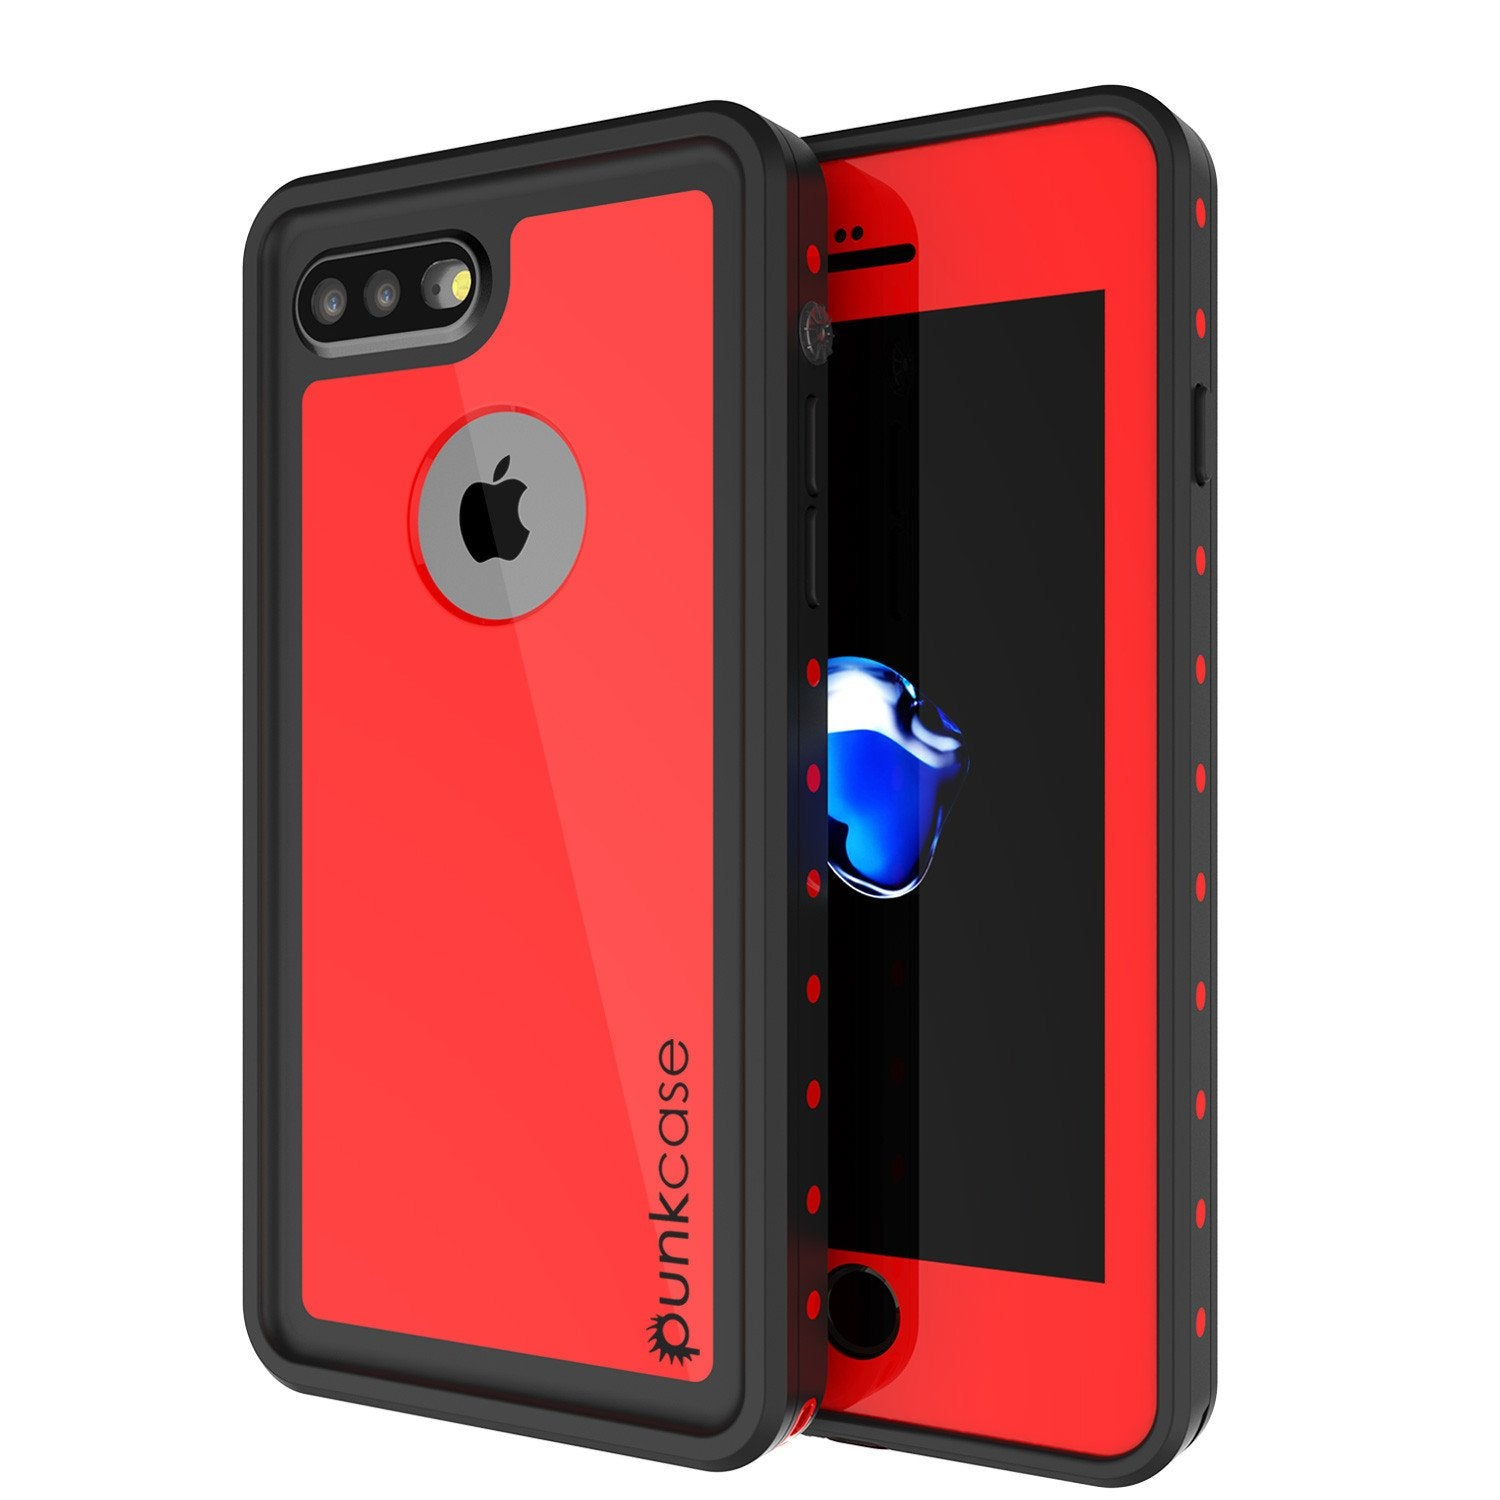 iPhone 8+ Plus Waterproof Case, Punkcase [StudStar Series] [Red] [Slim Fit] [IP68 Certified] [Shockproof] [Dirtproof] Armor Cover